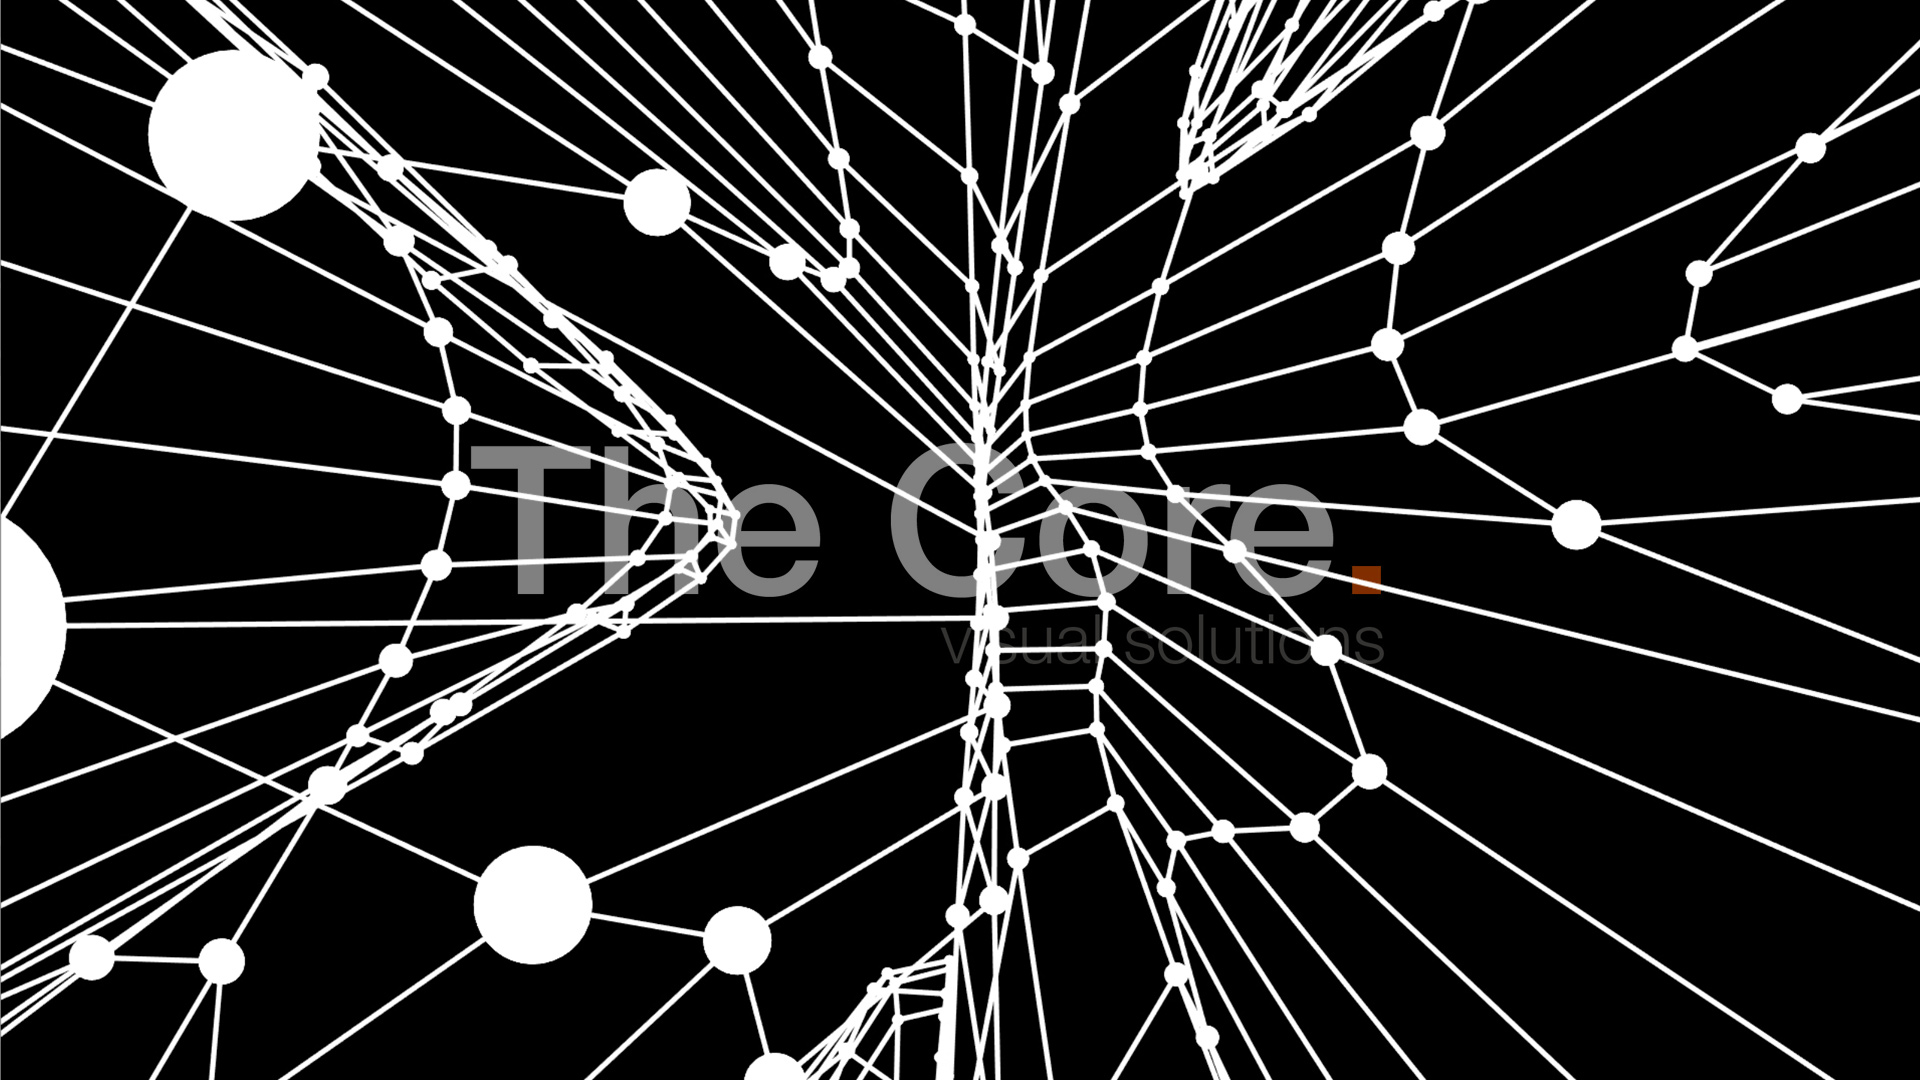 00069-WIRE-GRID-MOVE-UP-1STILL